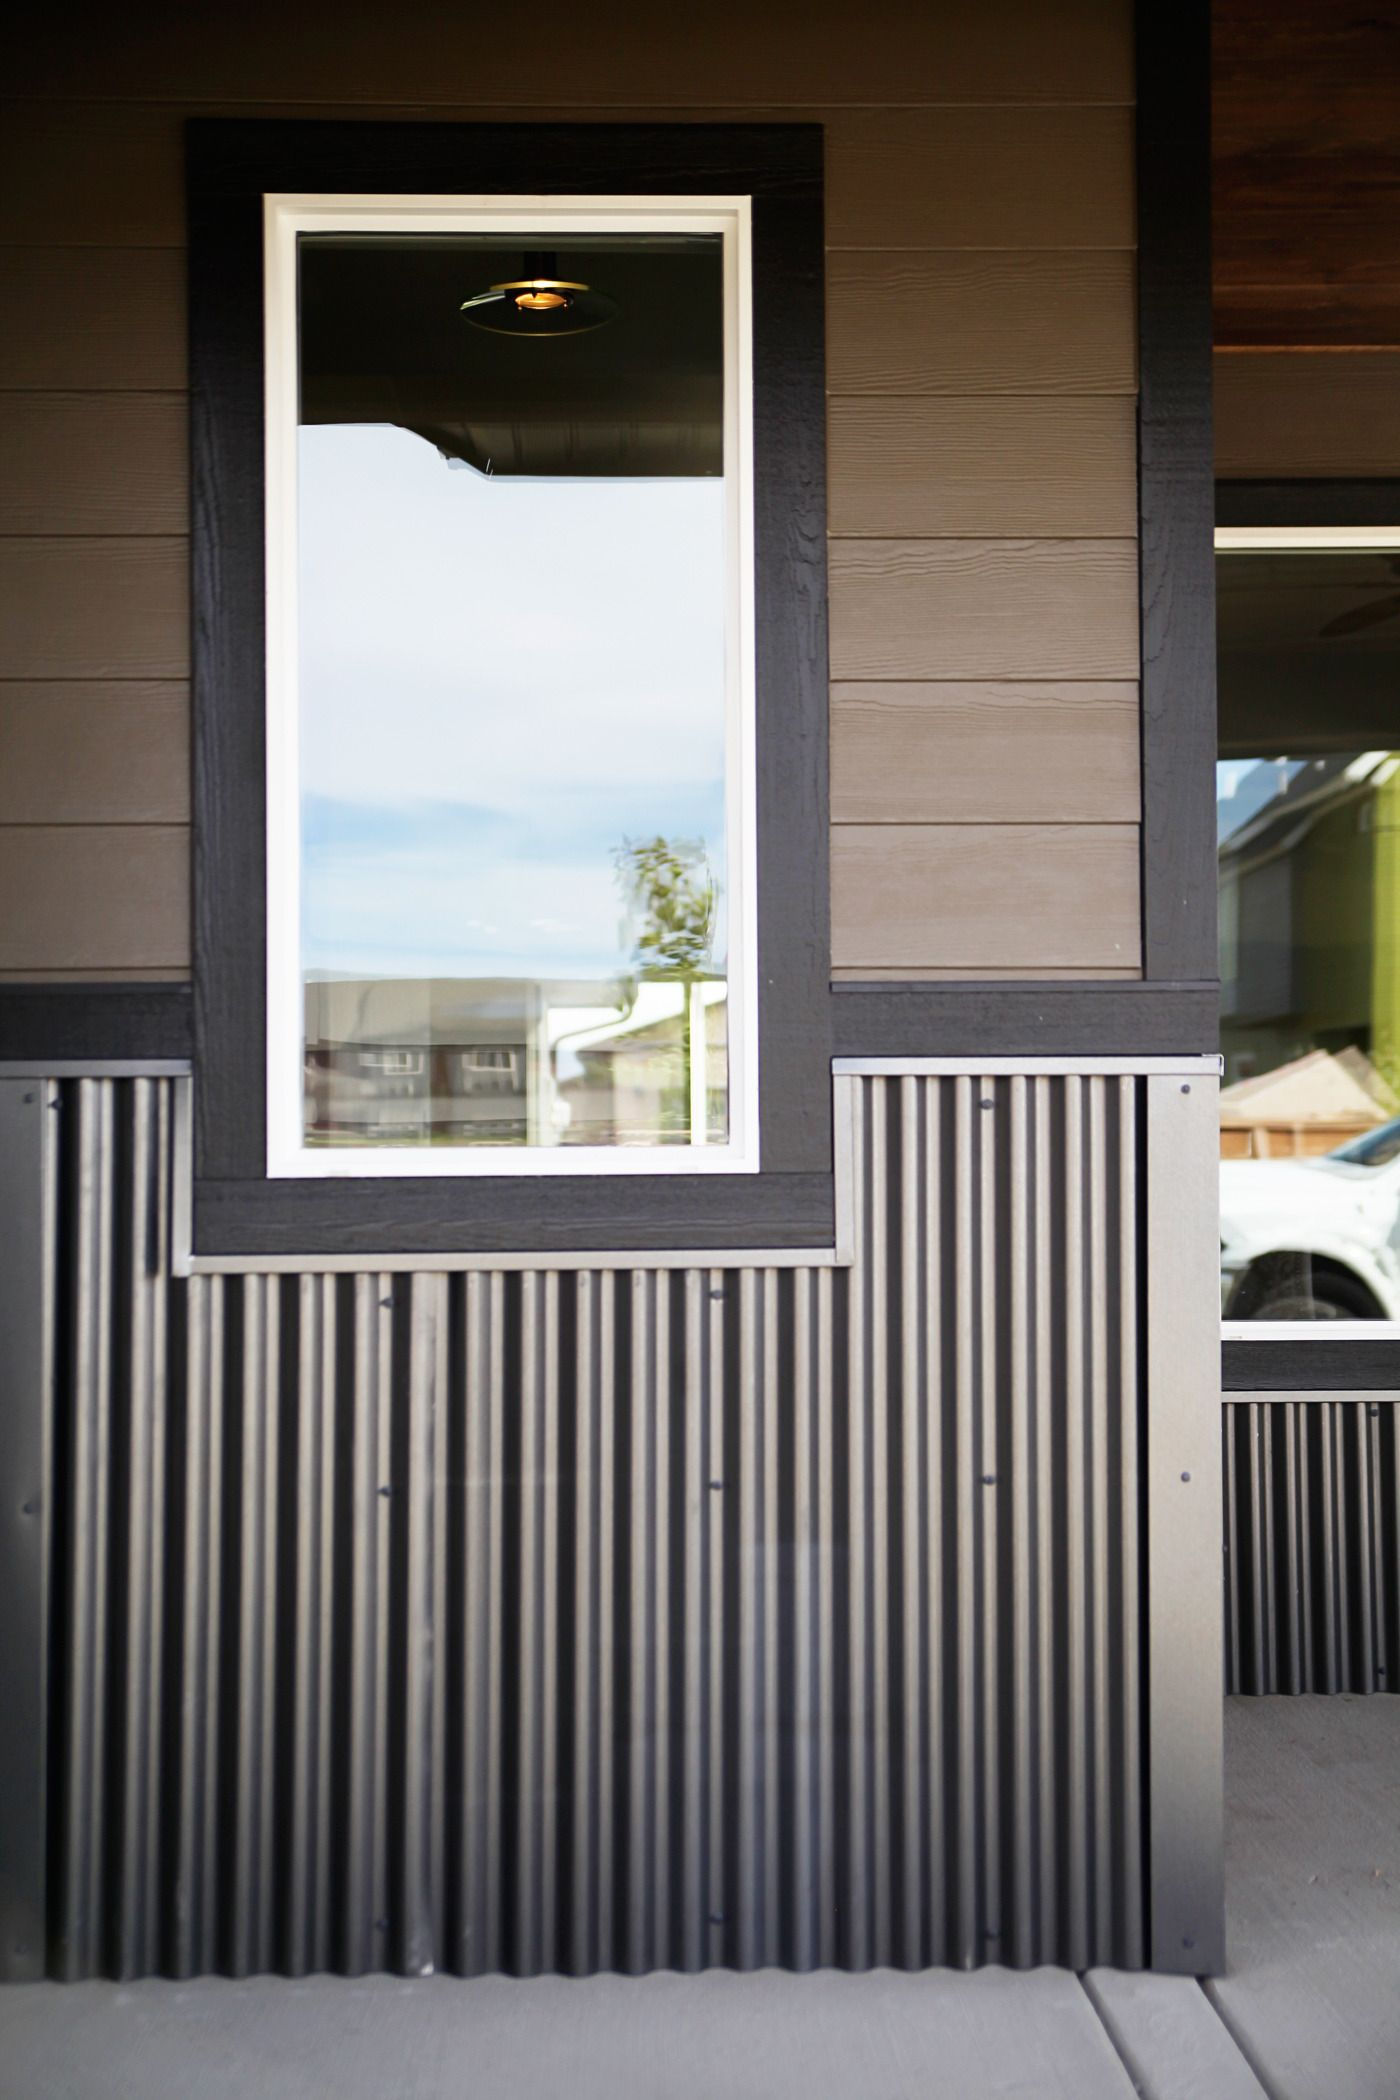 Corrugated Metal Wainscot By Bridger Steel House Exterior House Siding Metal Building Homes